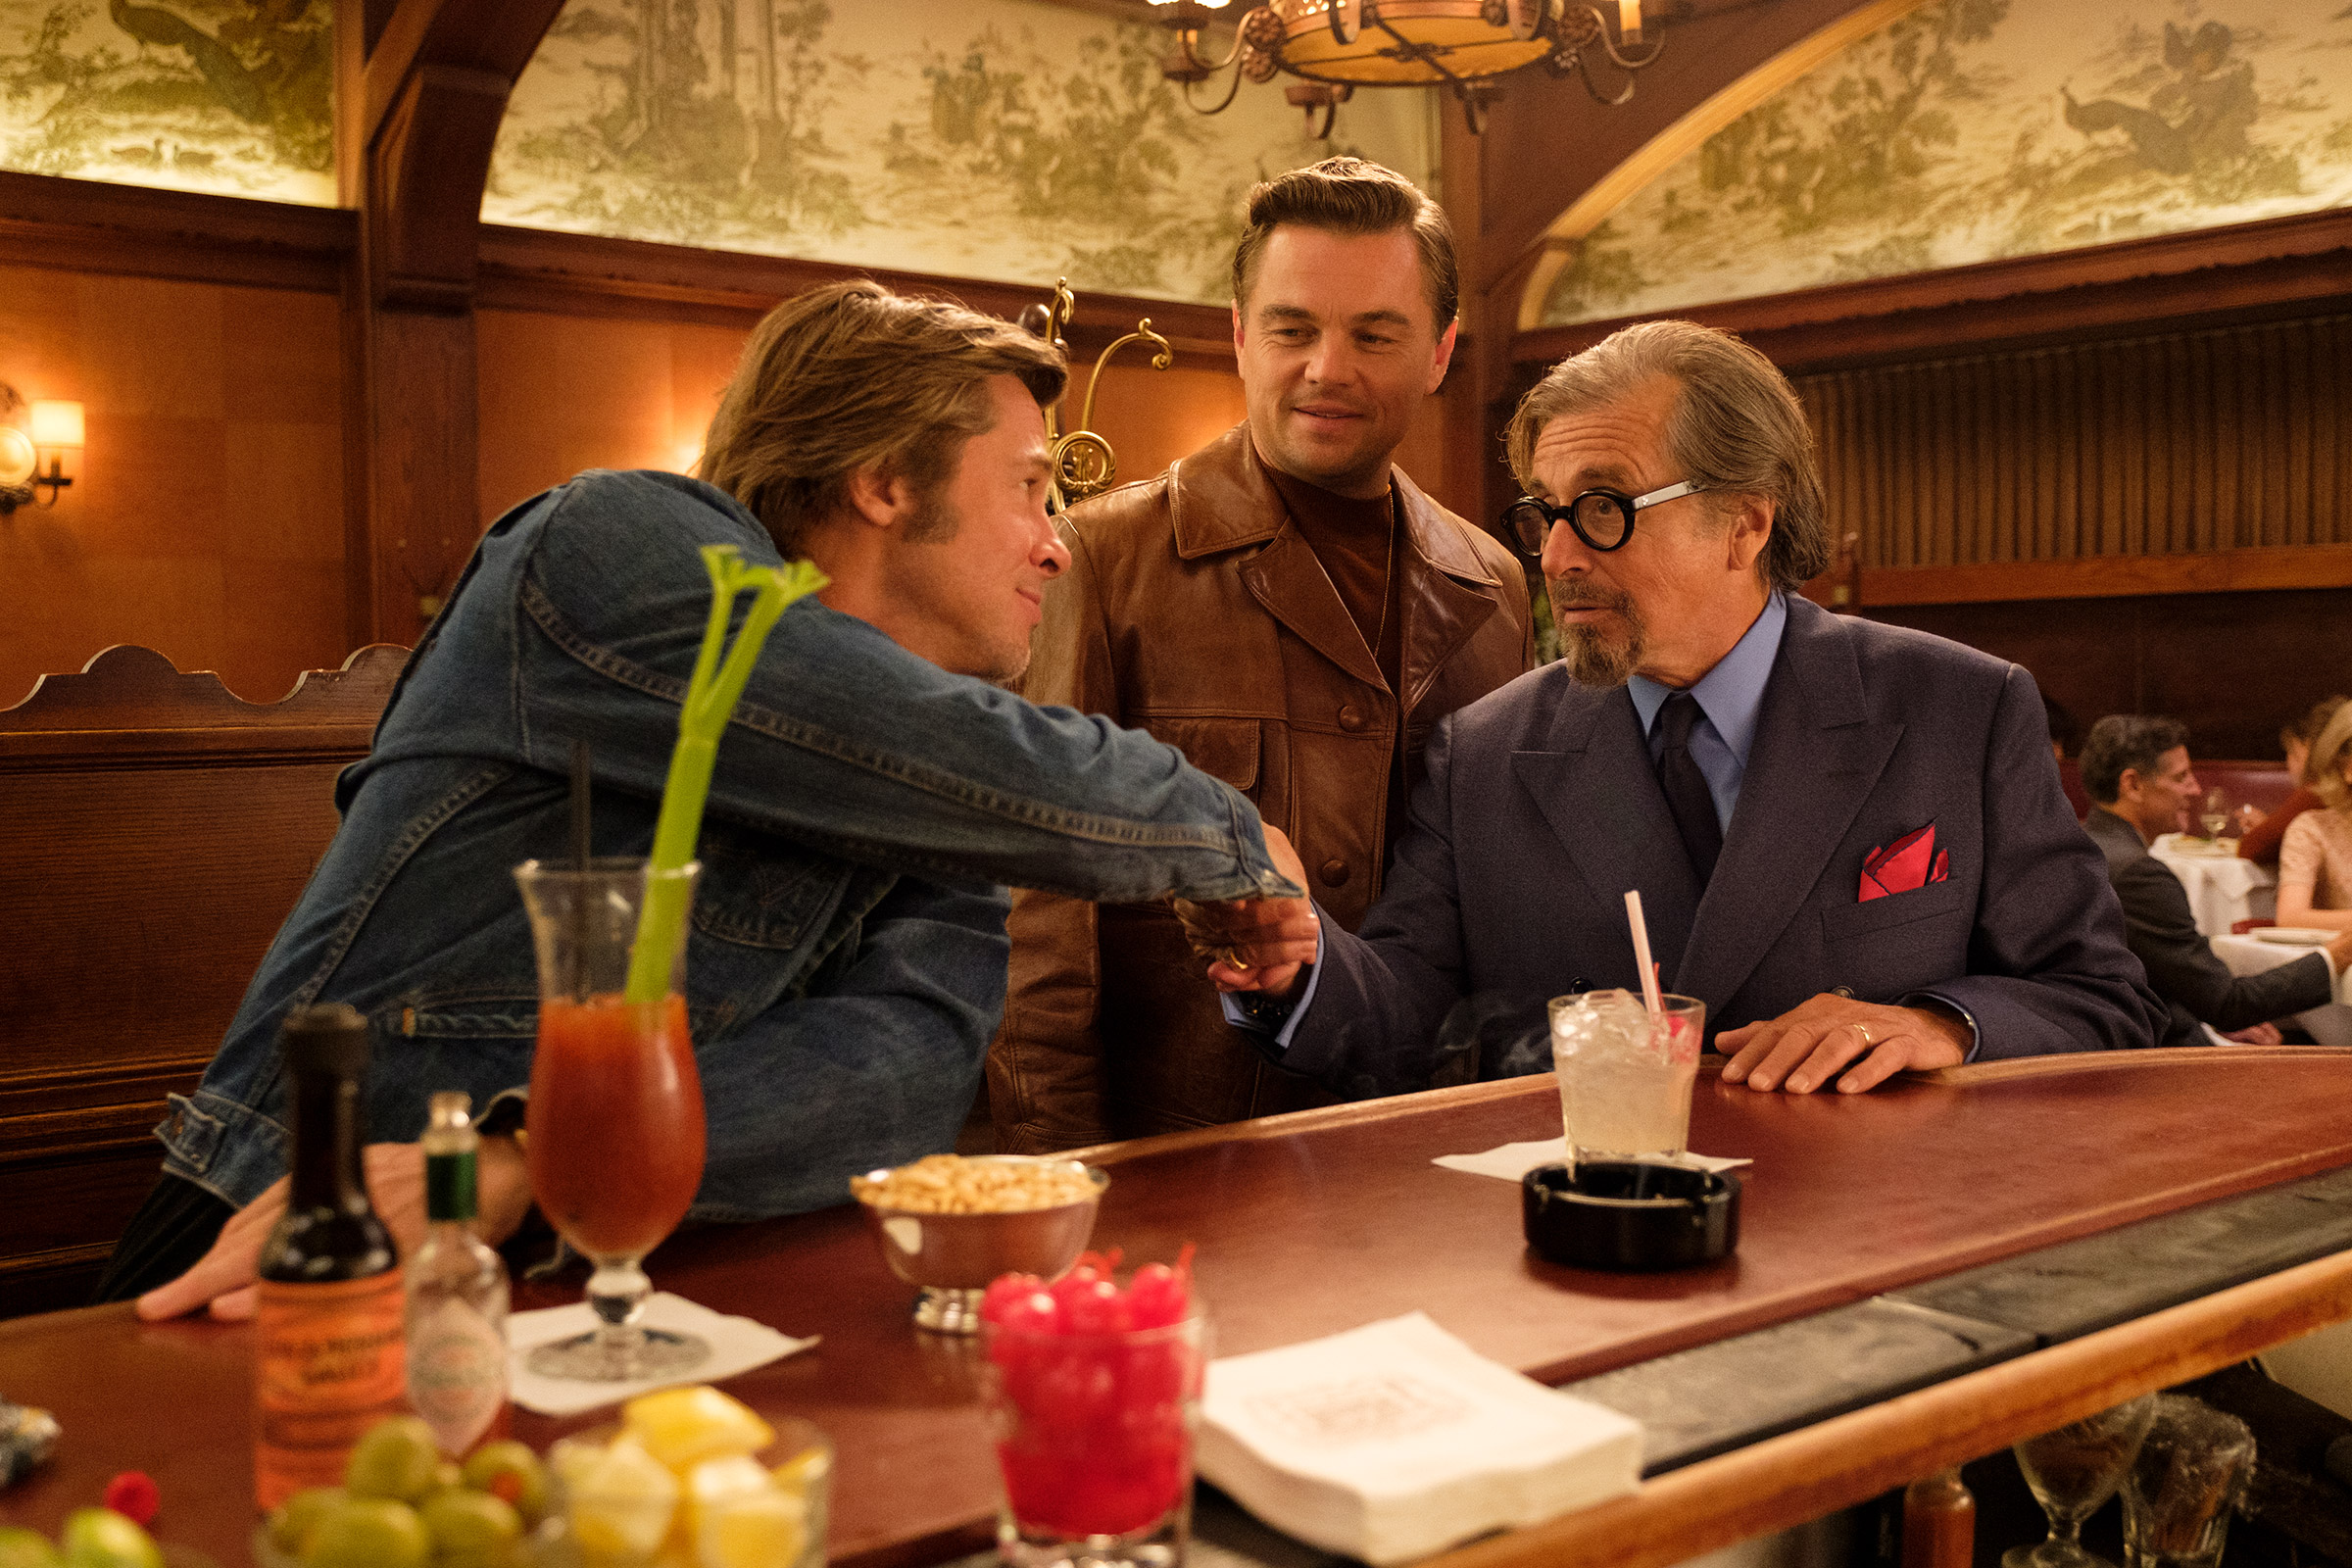 Both Brad Pitt and Leonardo DiCaprio were nominated for their performances in Quentin Tarantino's Once Upon a Time in ... Hollywood